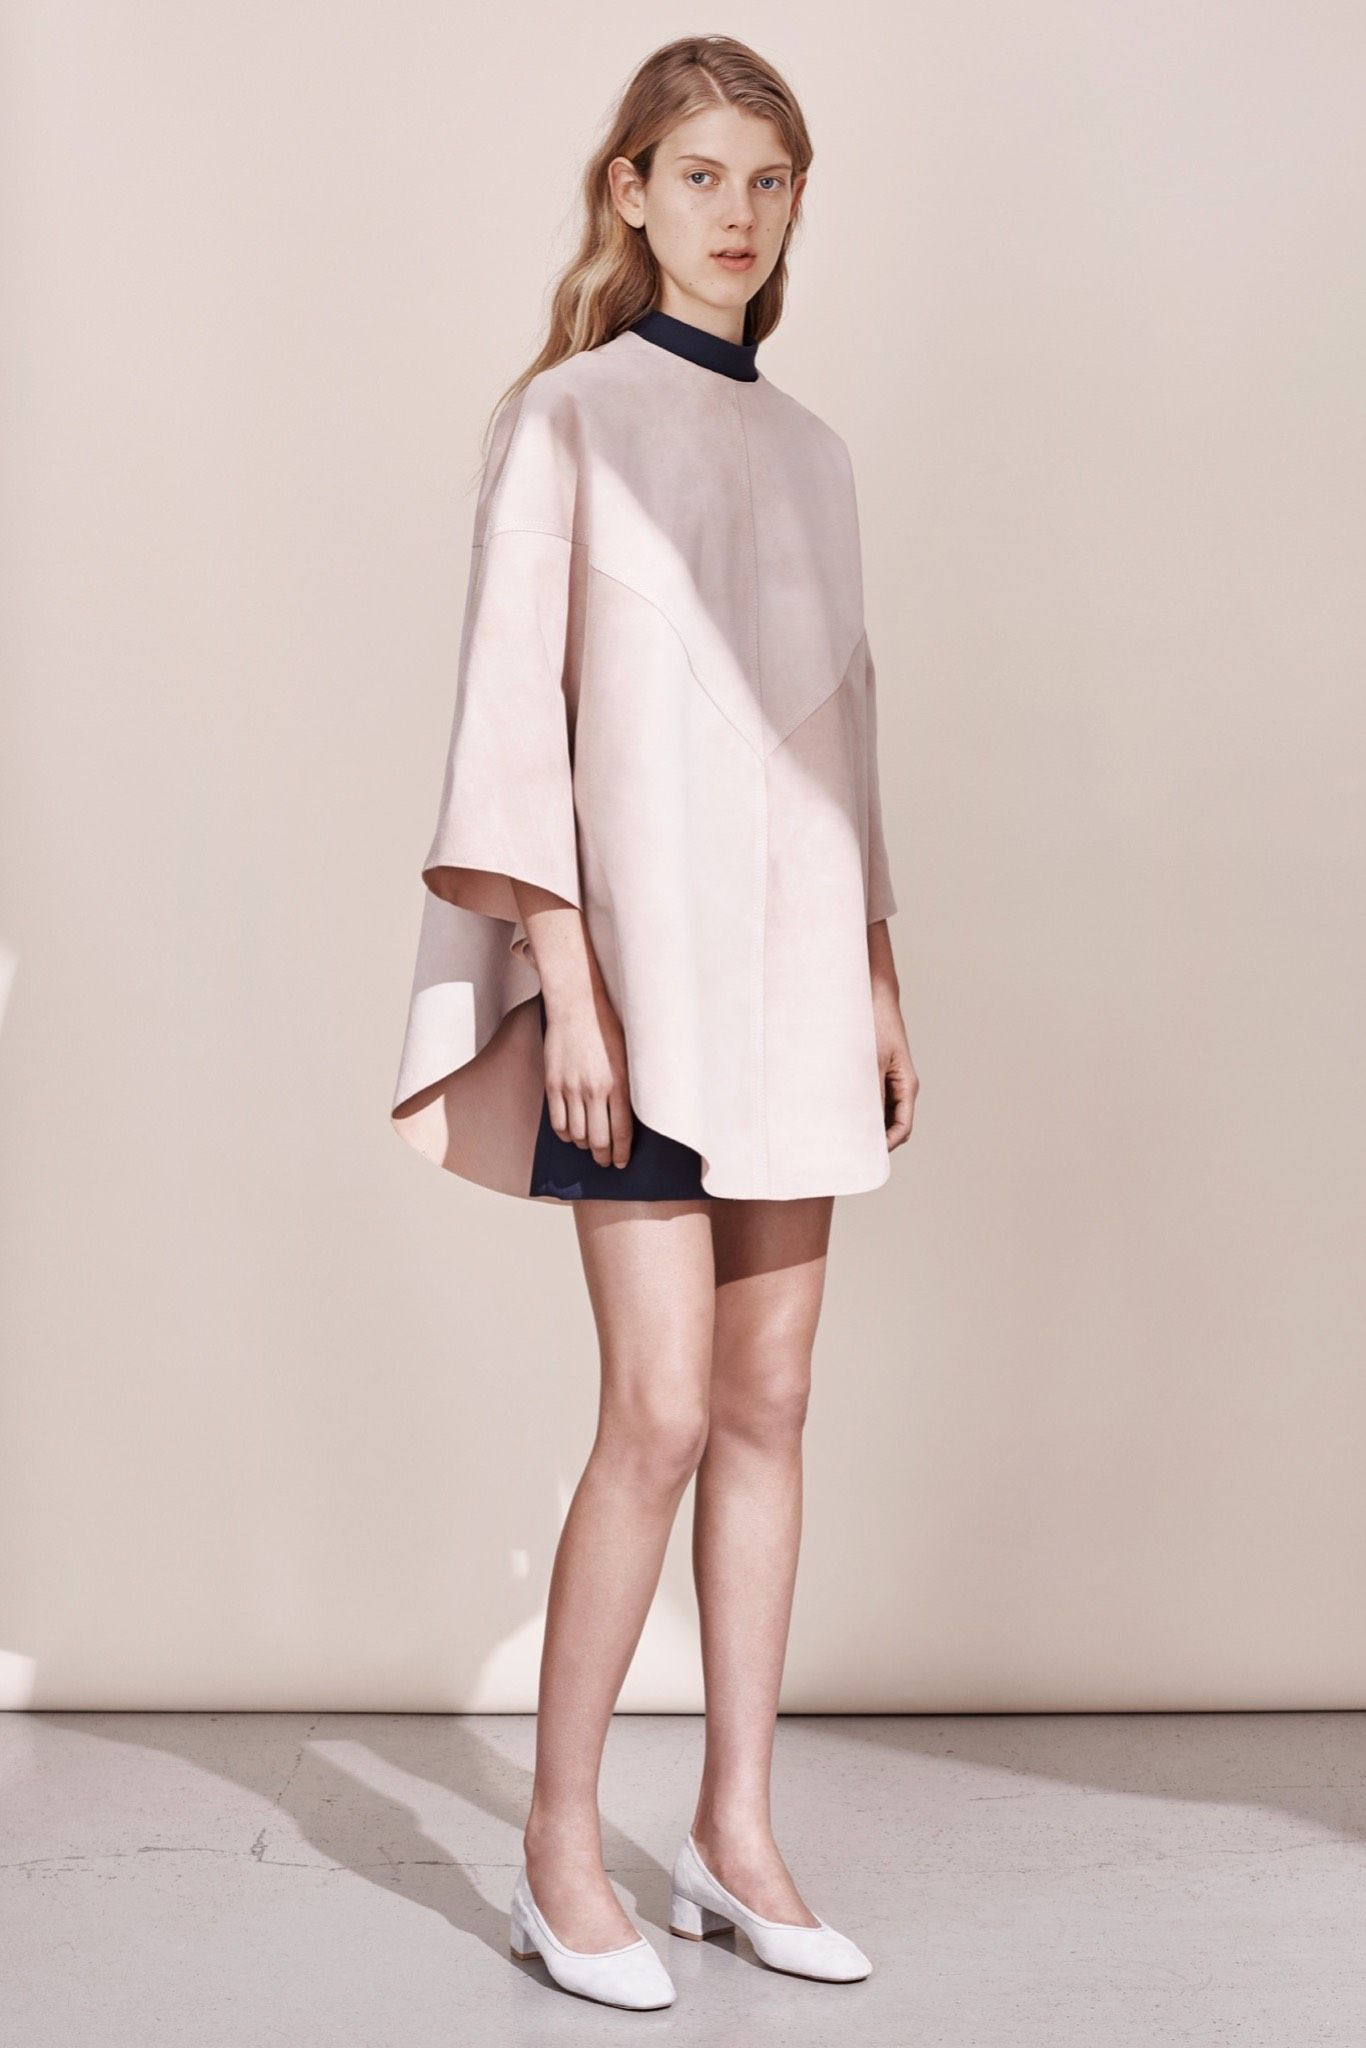 Jill Stuart Resort 2016 - Collection - Gallery - Style.com